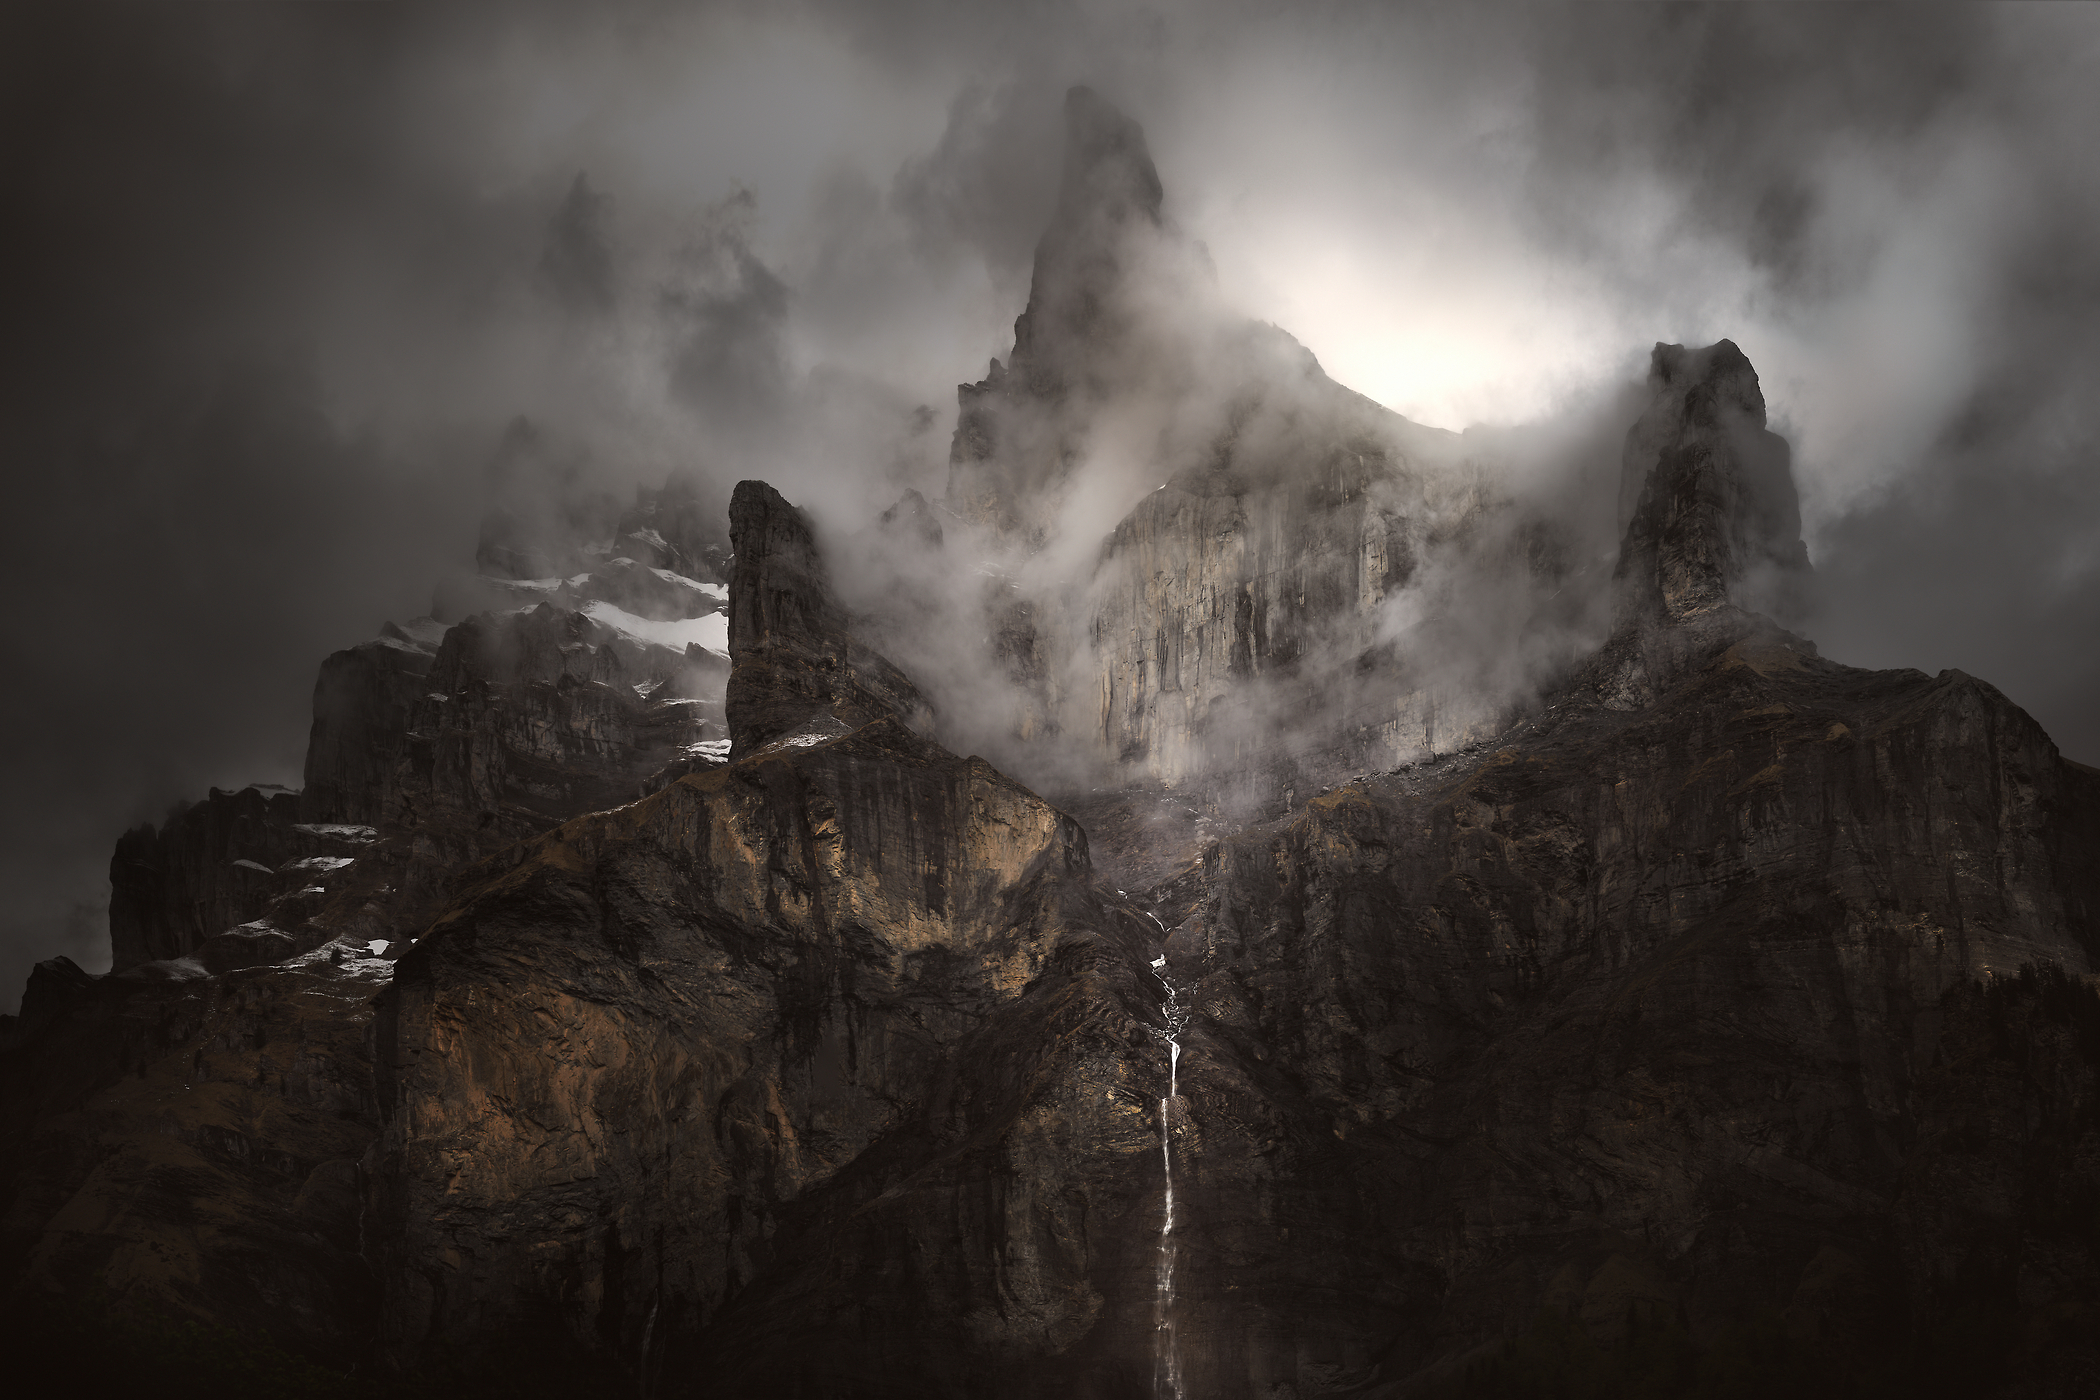 219 megapixels! A very high resolution, large-format VAST photo of dark mountains and clouds; fine art mountain photographic print created by Alexandre Deschaumes in Giffrenant, Sixt fer à cheval, France